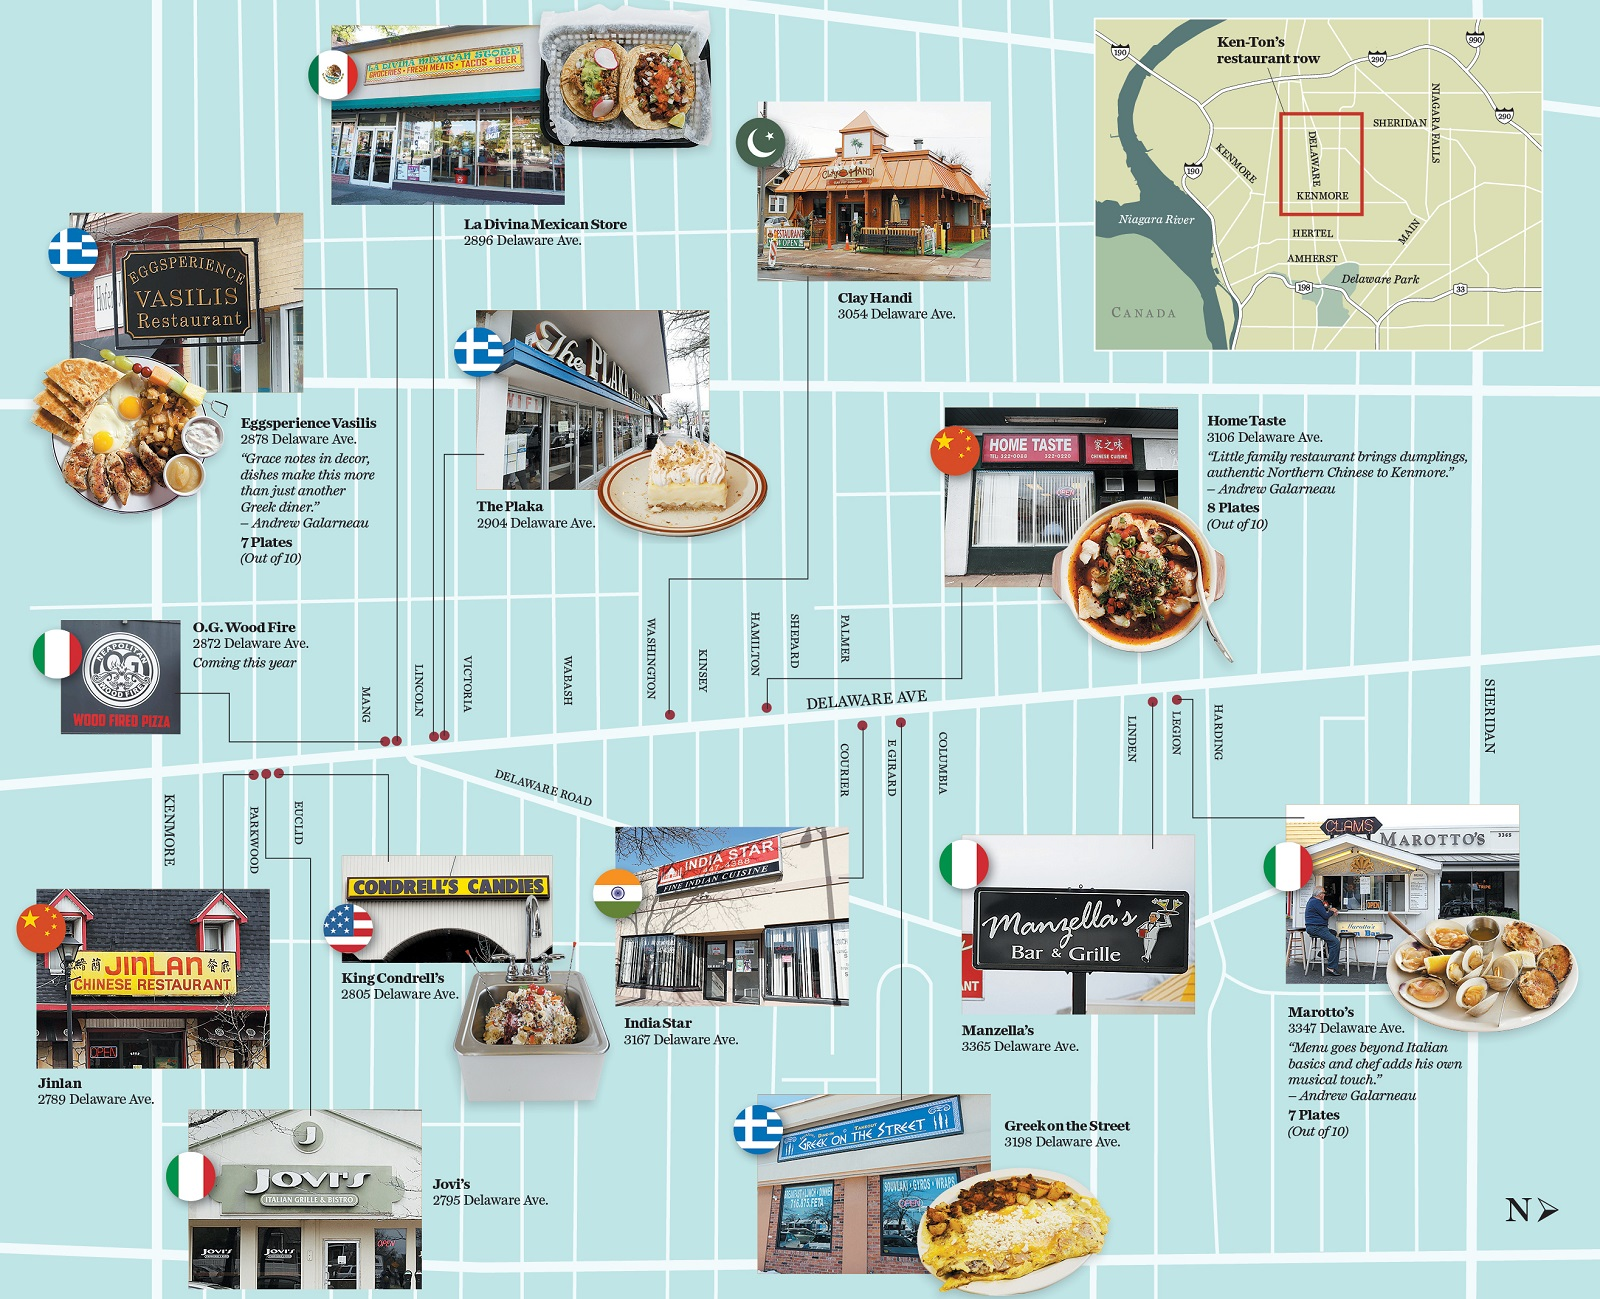 The activity in and transformation of Kenmore-Delaware restaurants.